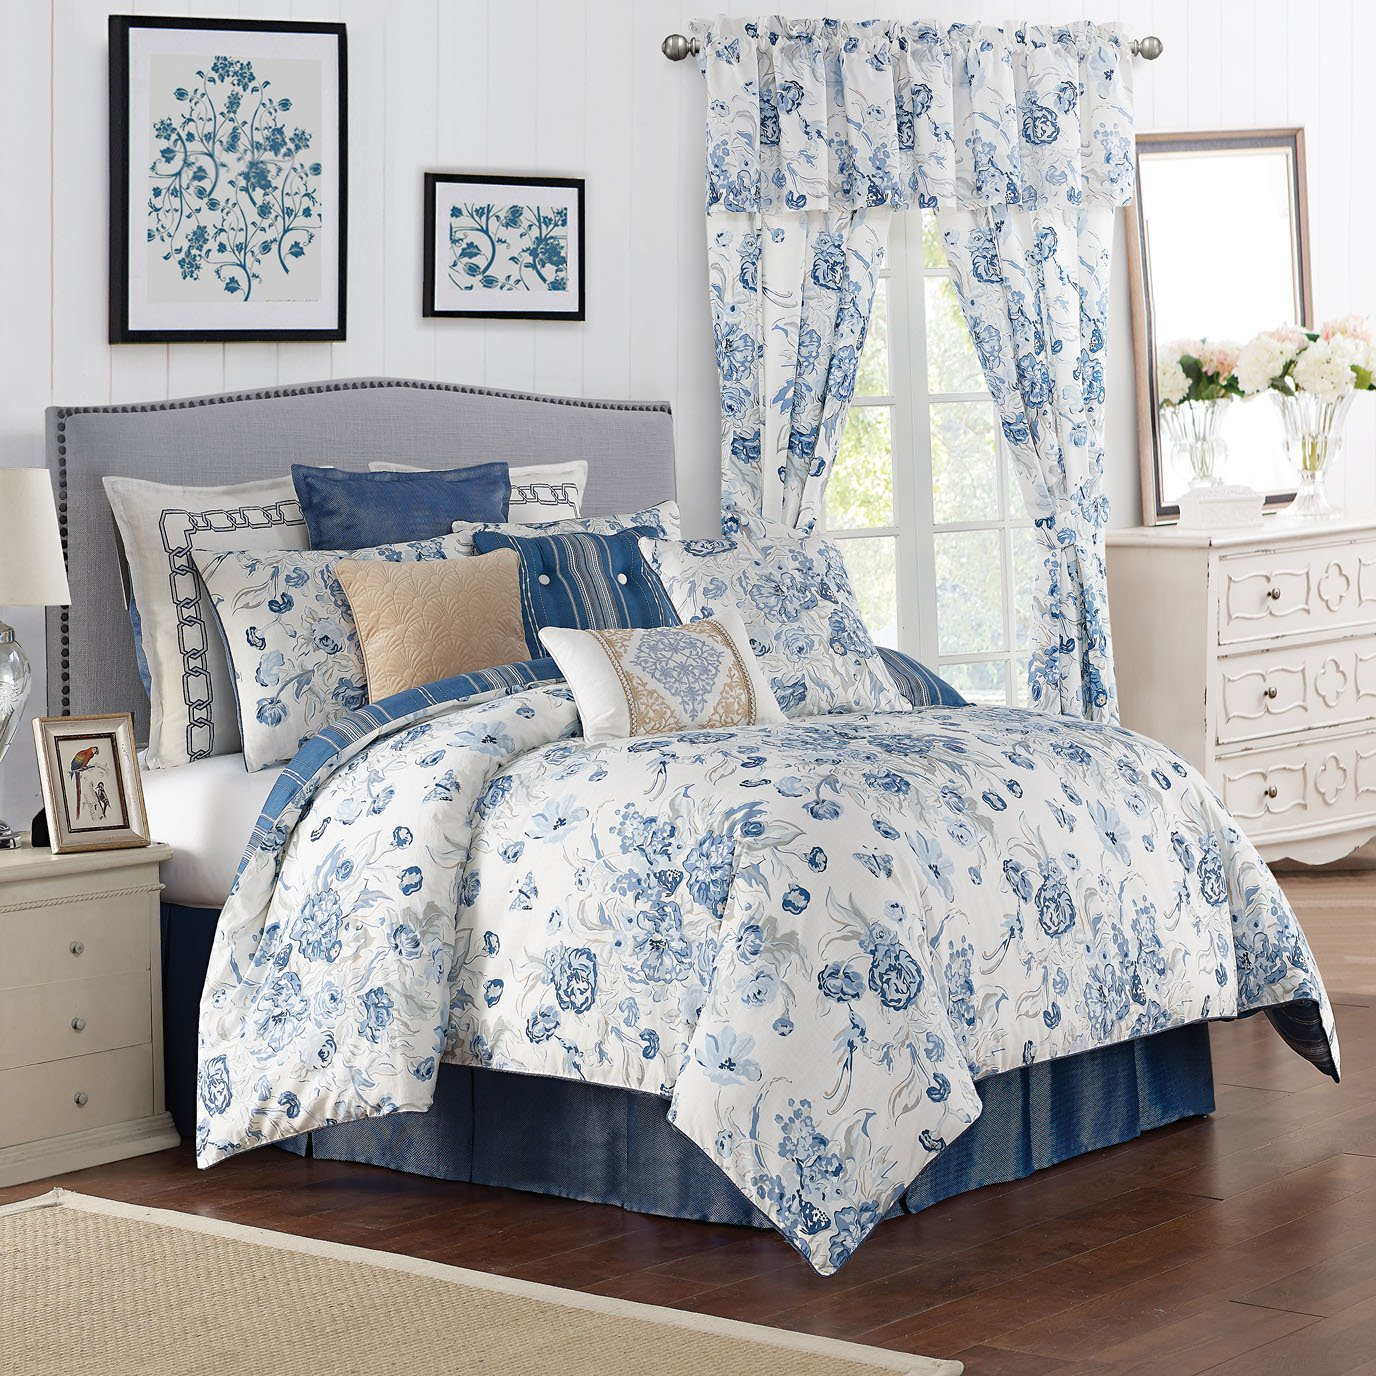 Ardenelle 4 Piece Queen Comforter Set